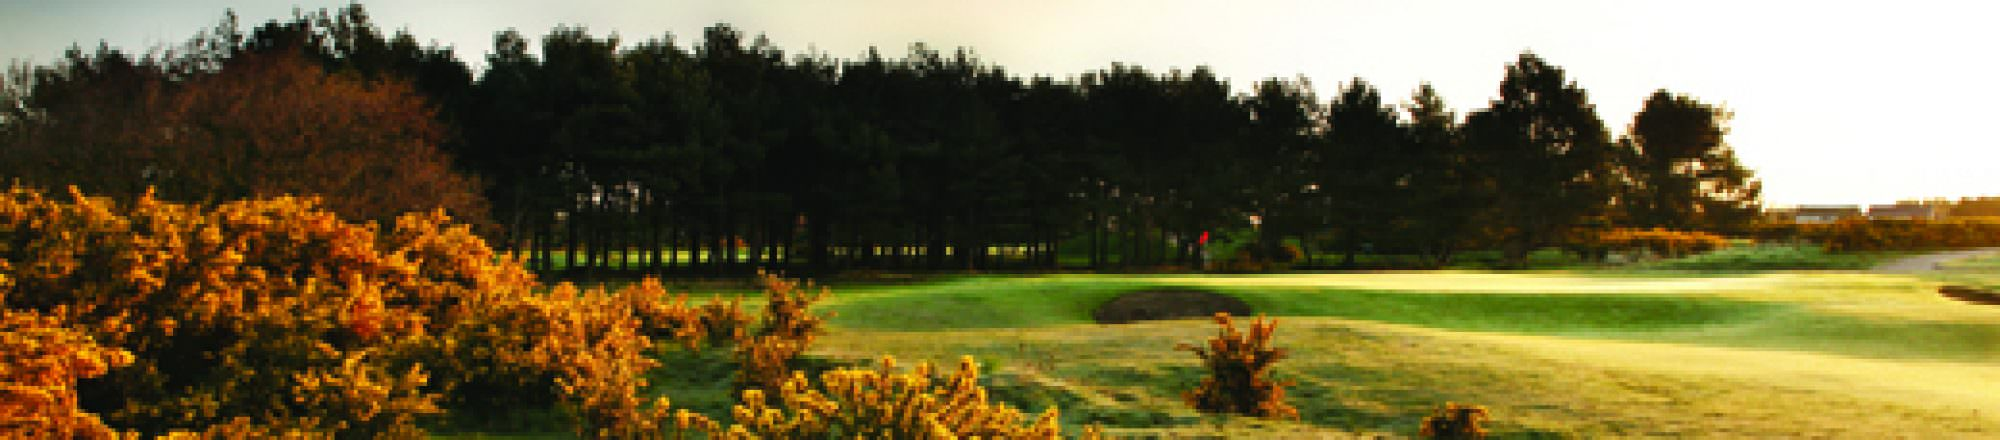 Top 100 links golf courses in GB&I: 66 - Southport & Ainsdale